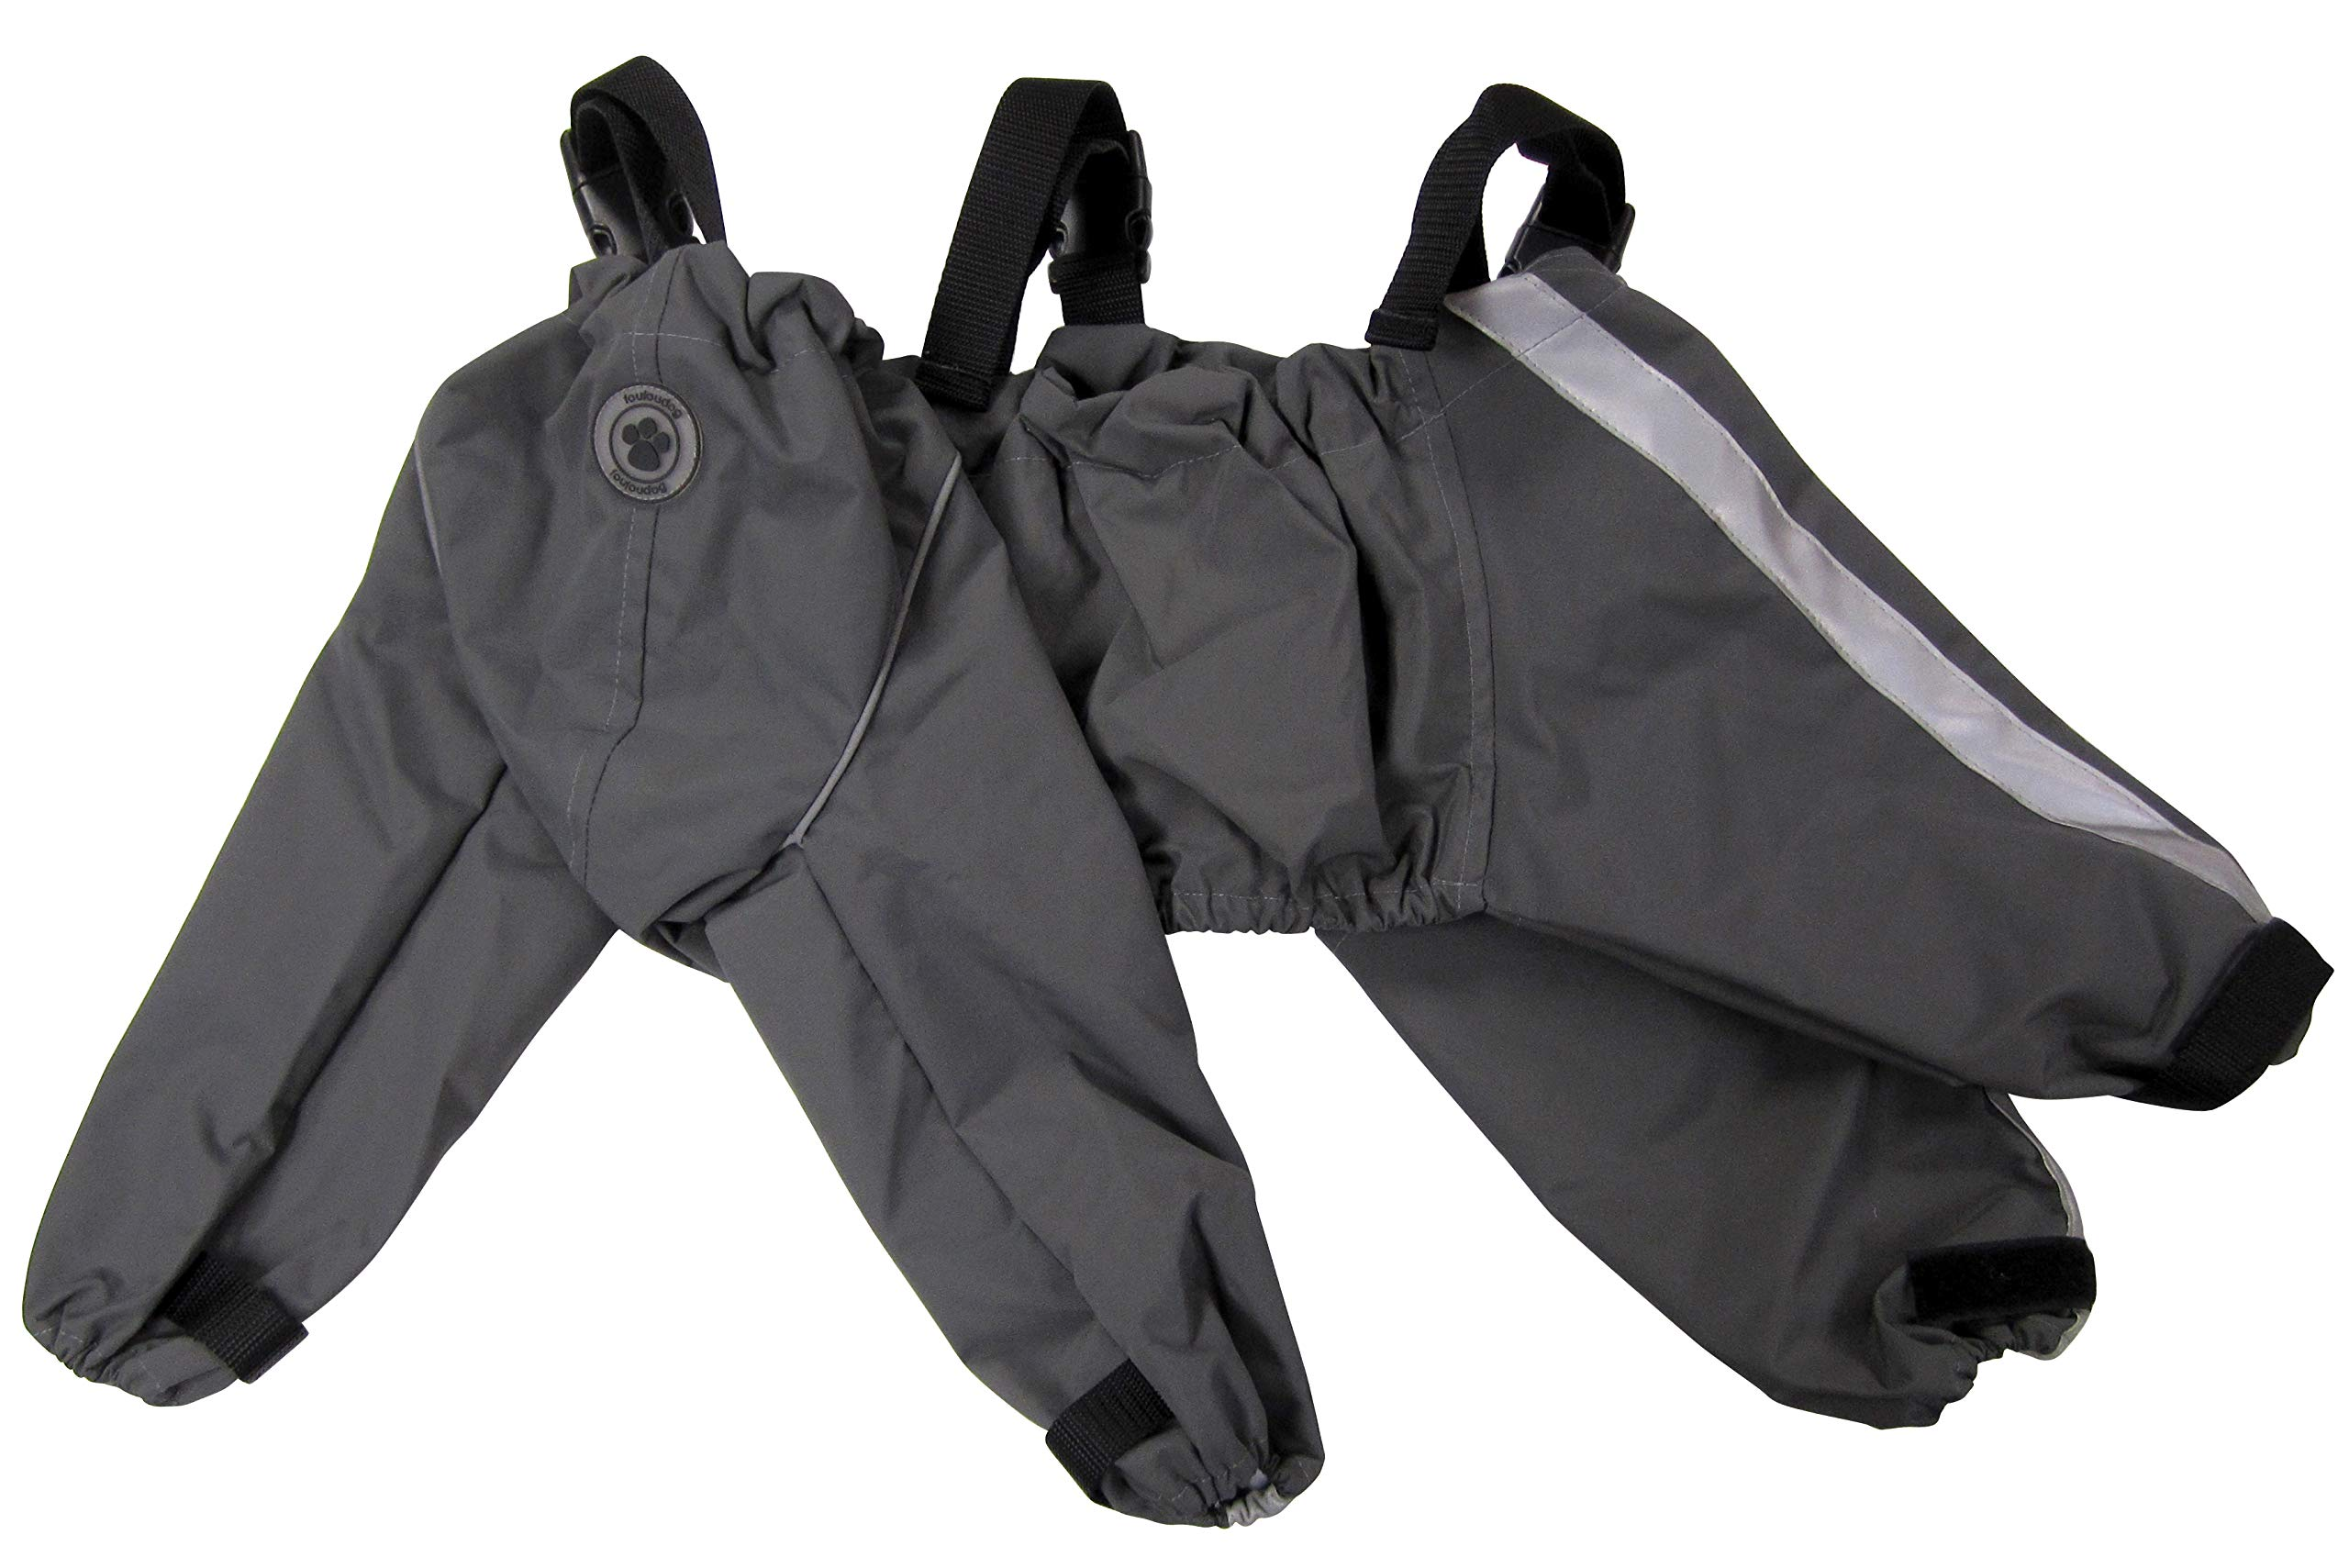 FouFou Dog 62558 Bodyguard Protective All-Weather Dog Pants, Small, Gray by FouFou Dog